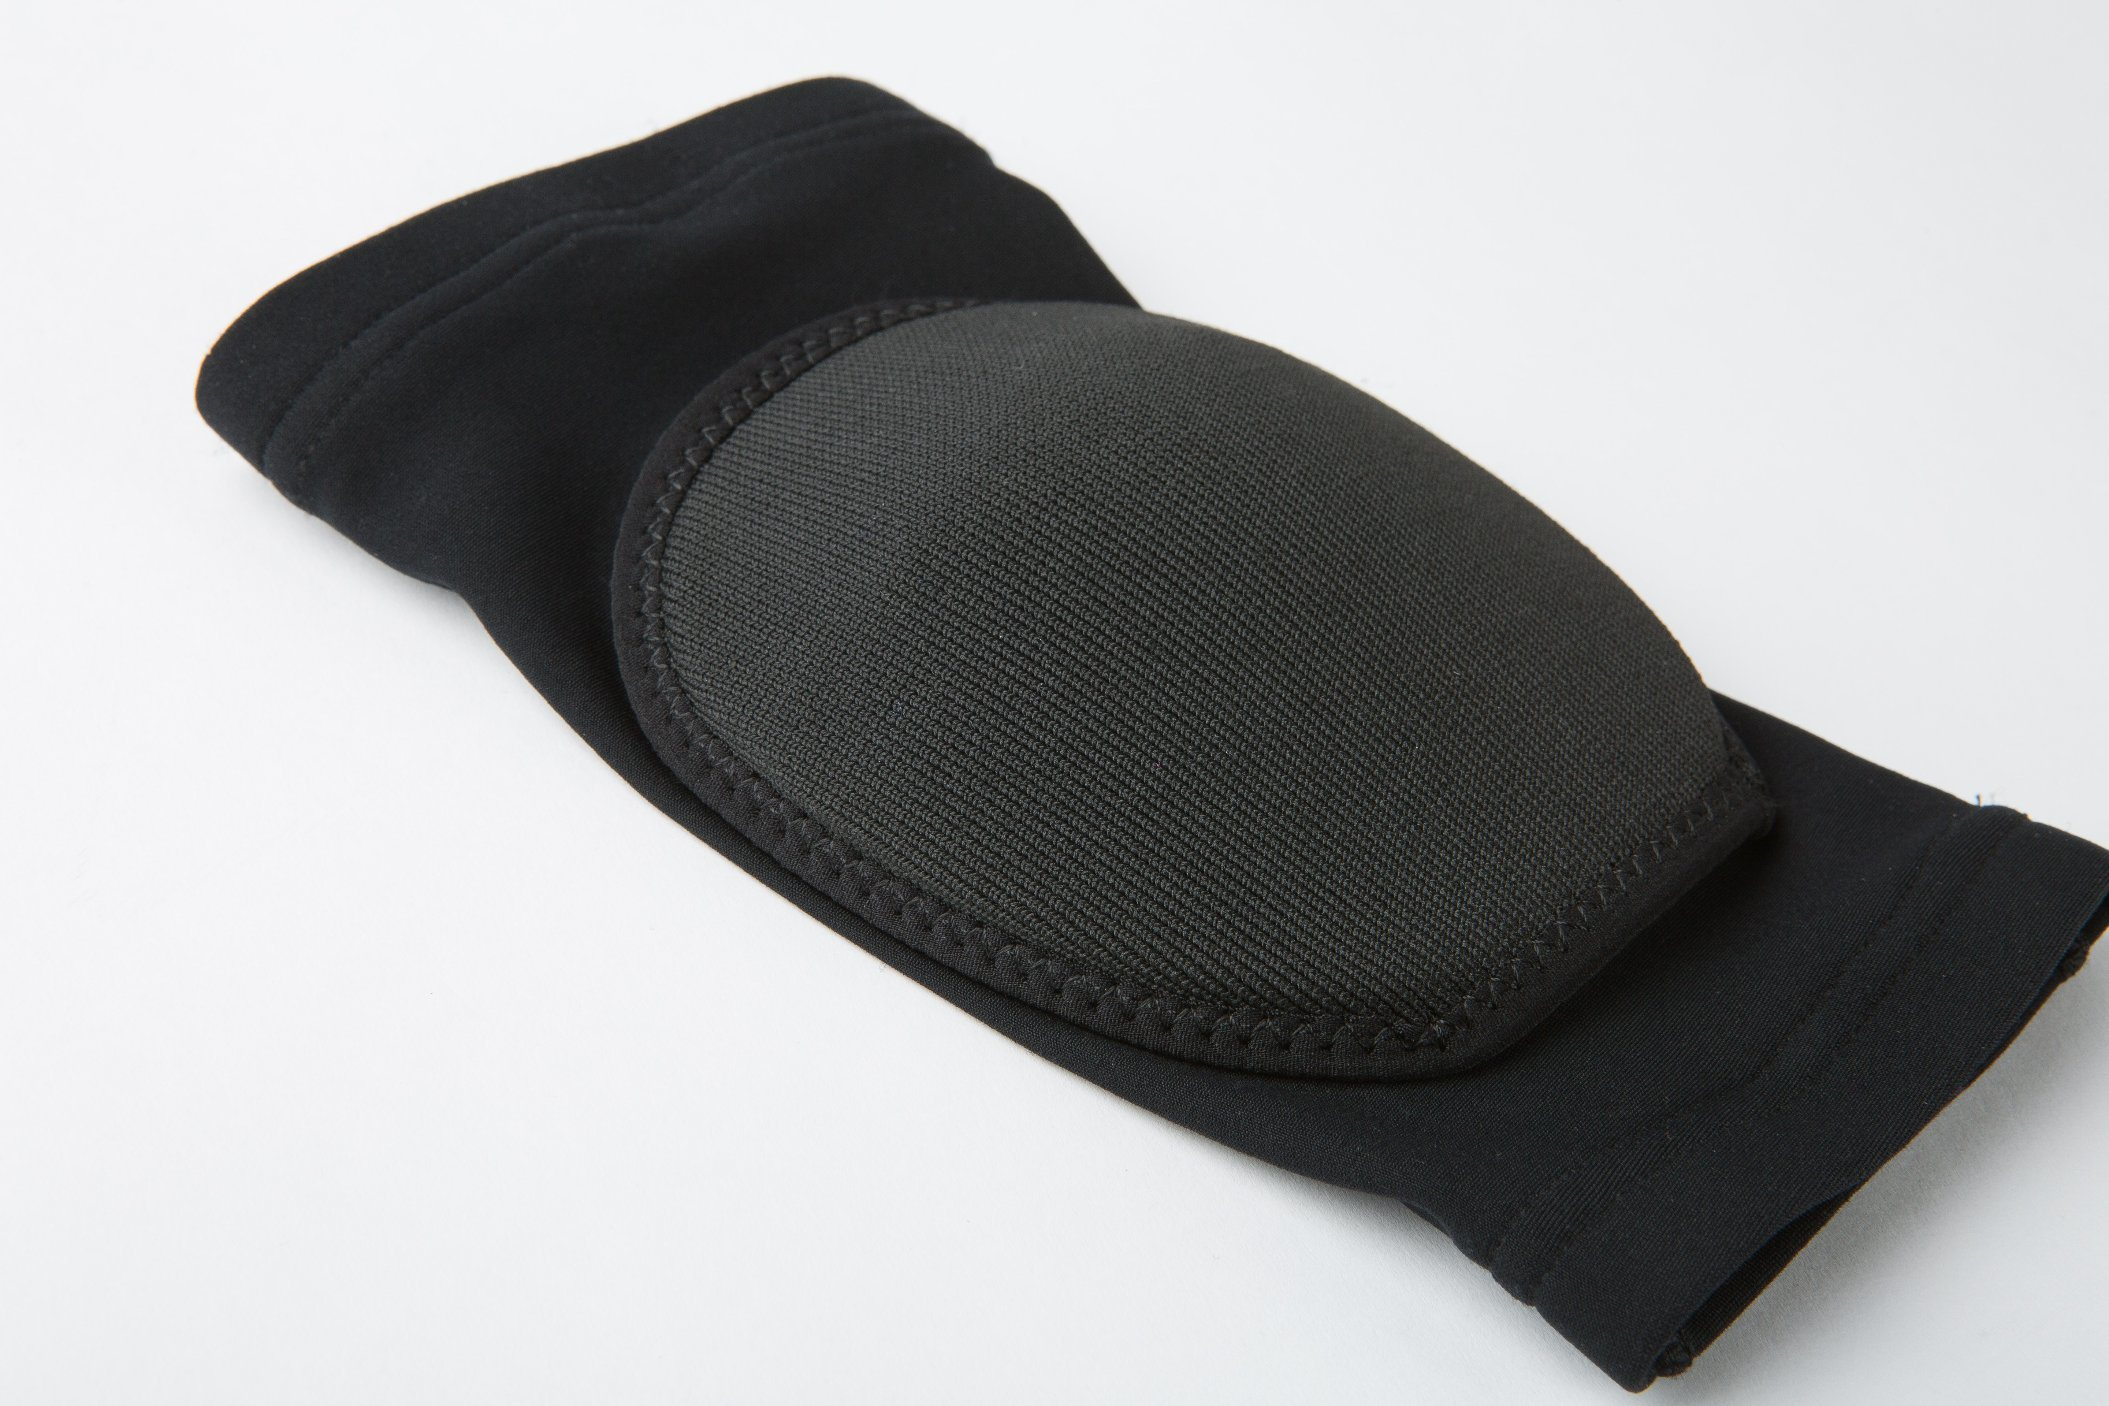 Lithe Foam Compression Knee Brace Guard Support with Soft Cushion